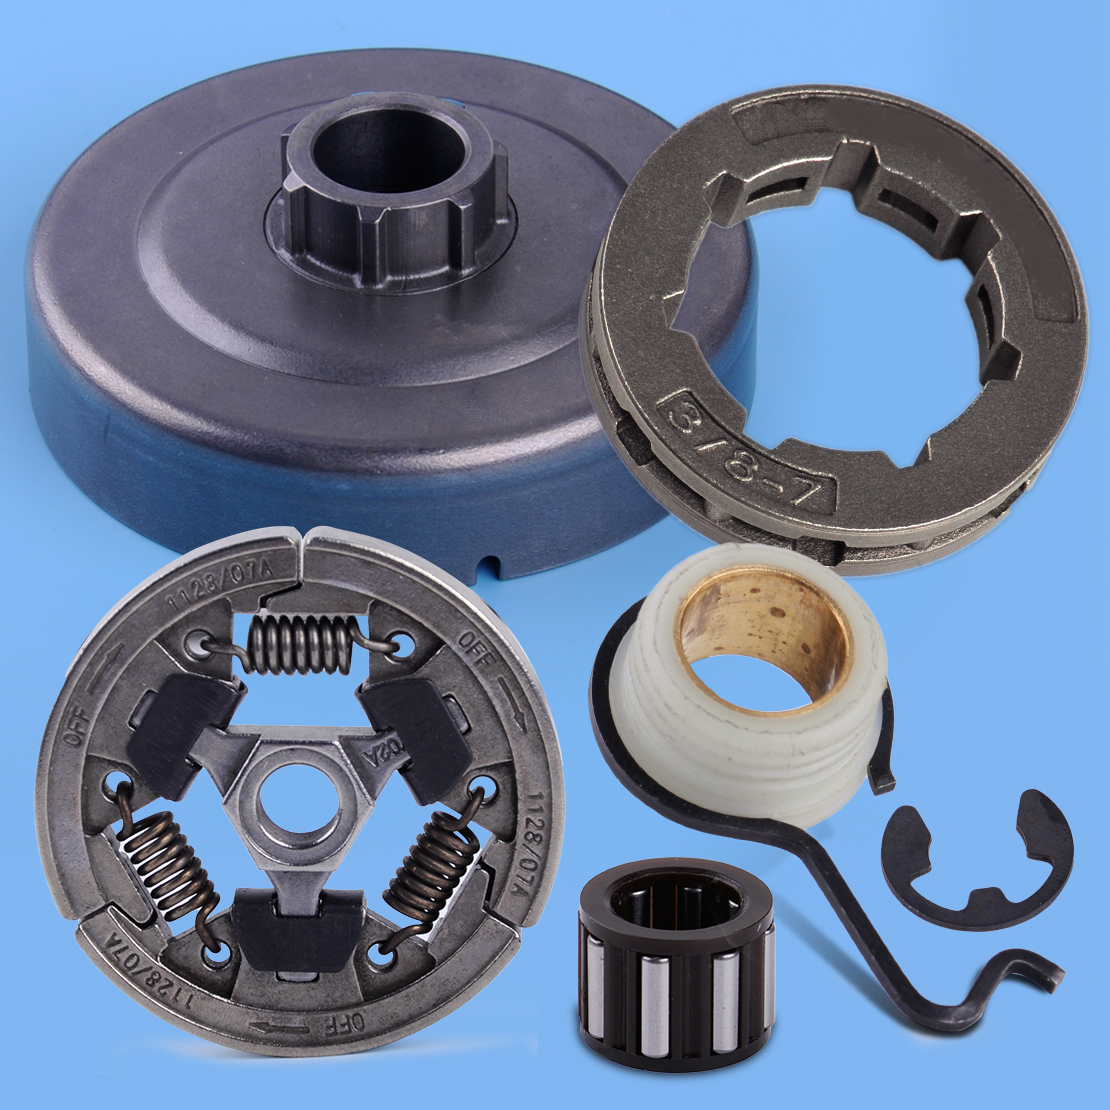 LETAOSK Chain Sprocket Clutch Drum Cage Bearing Worm Gear E-Clip Set Fit For Stihl 044 046 MS440 MS460Accessories